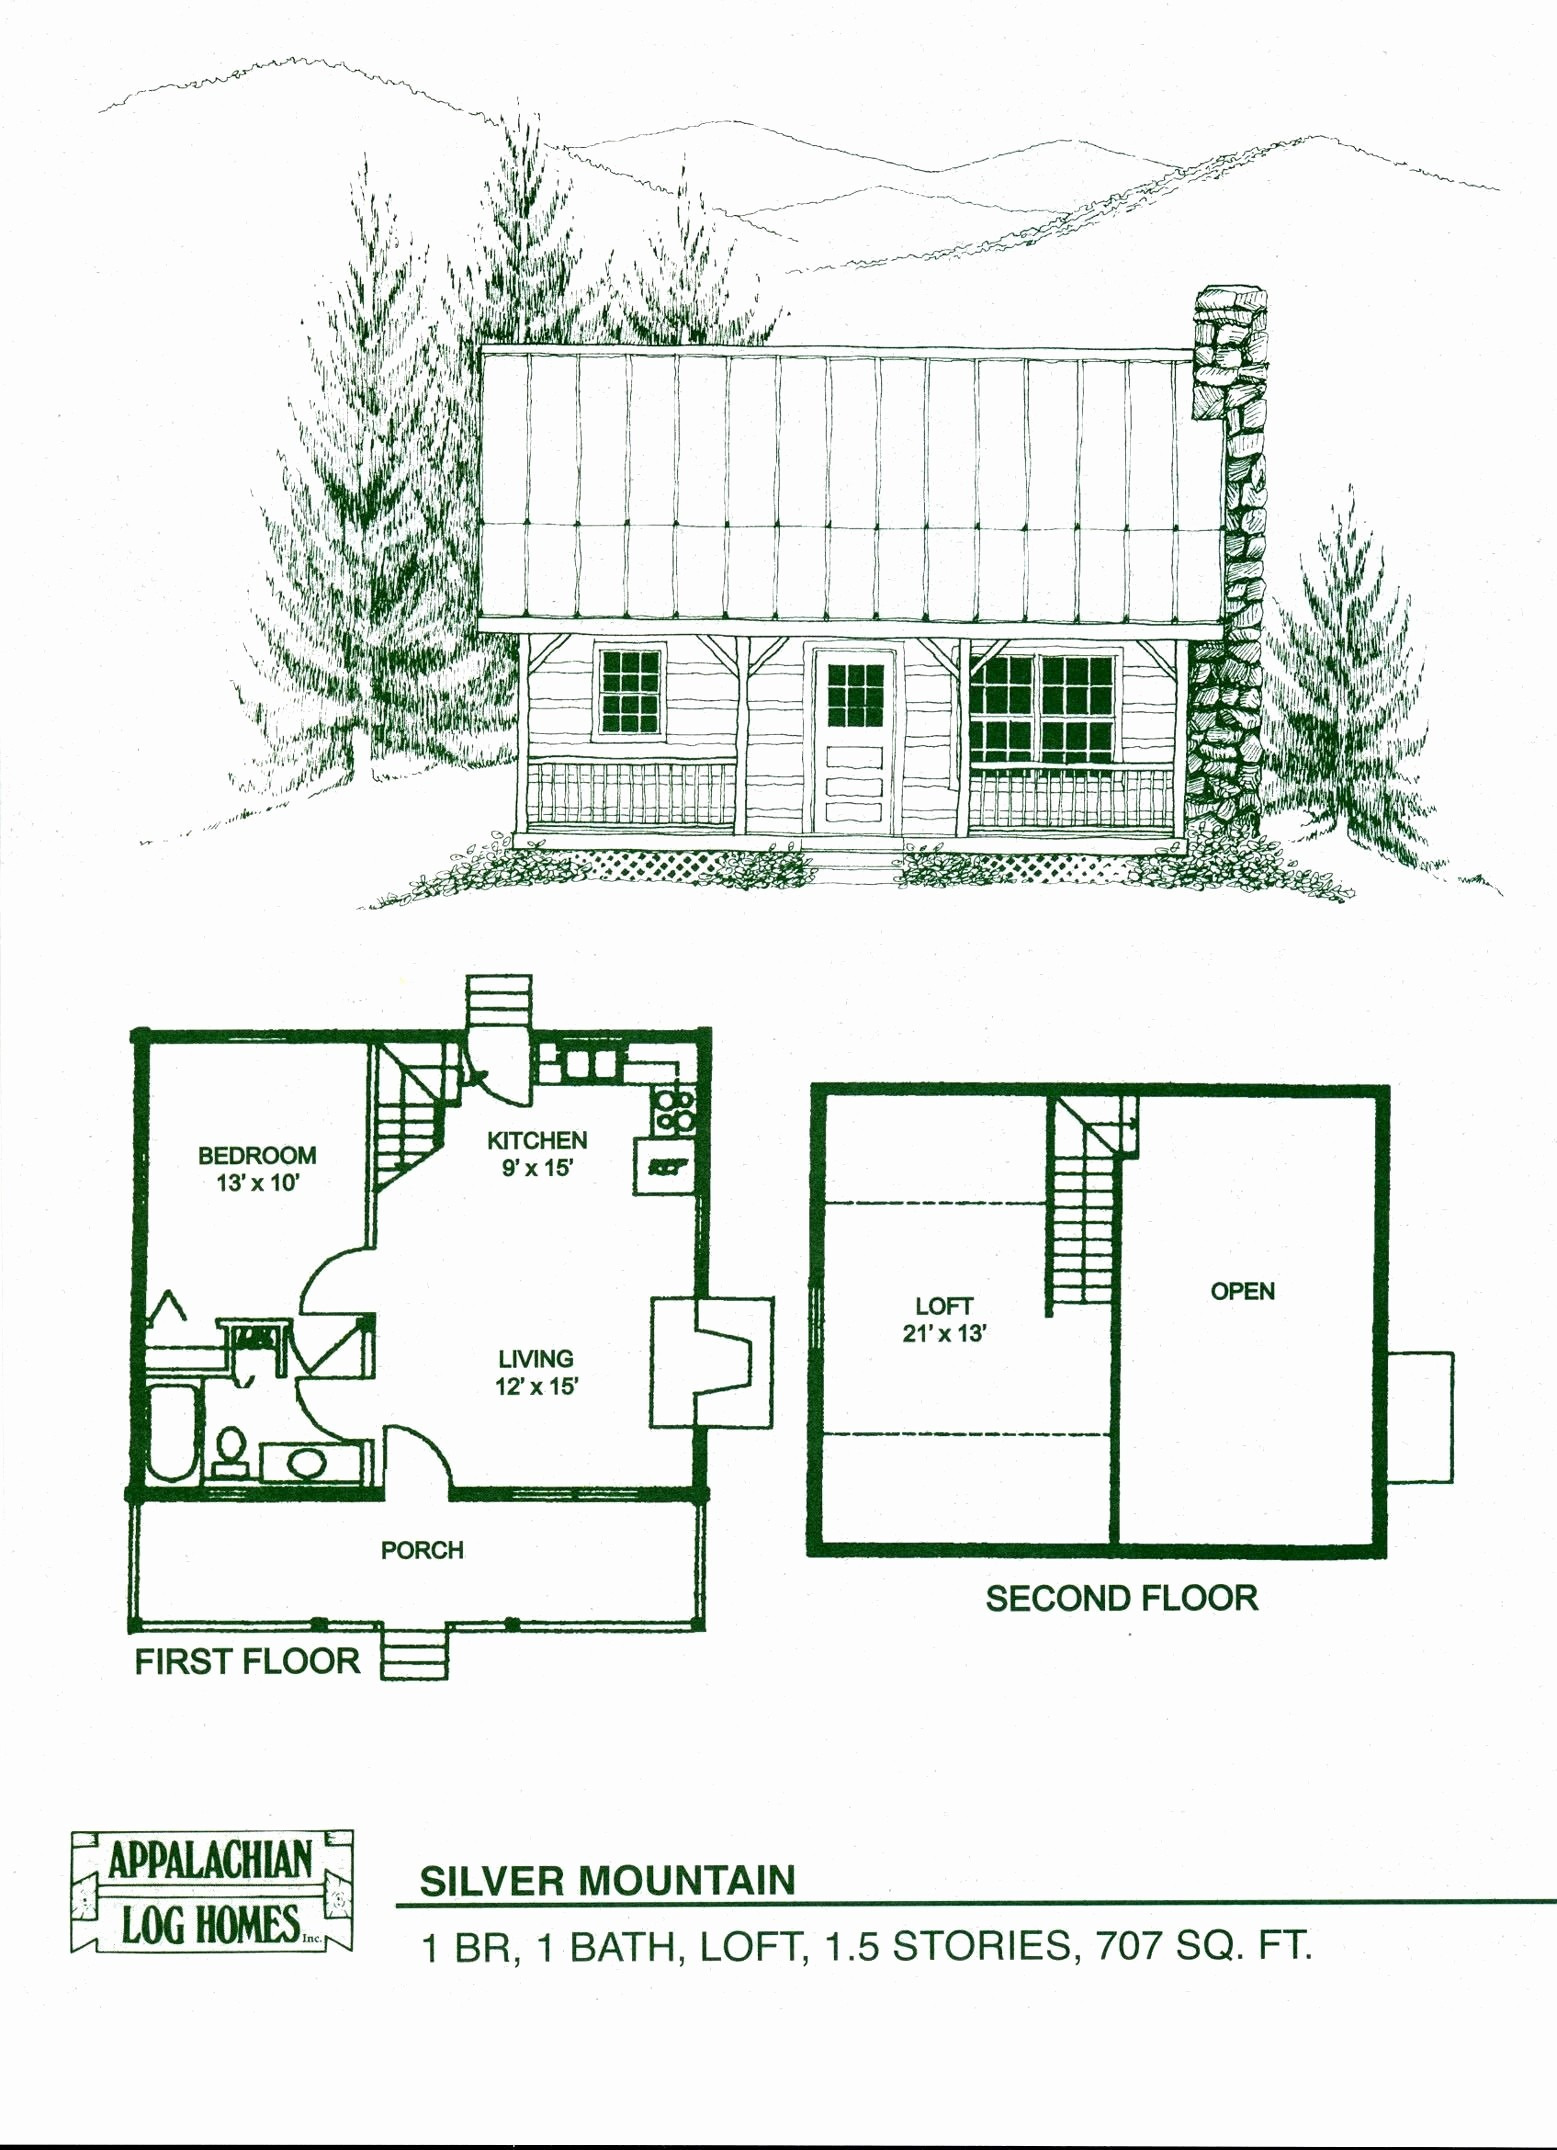 House Plans with Motorhome Garage New Shed Dormer House Plans Lovely Small Luxury Floor Dormers